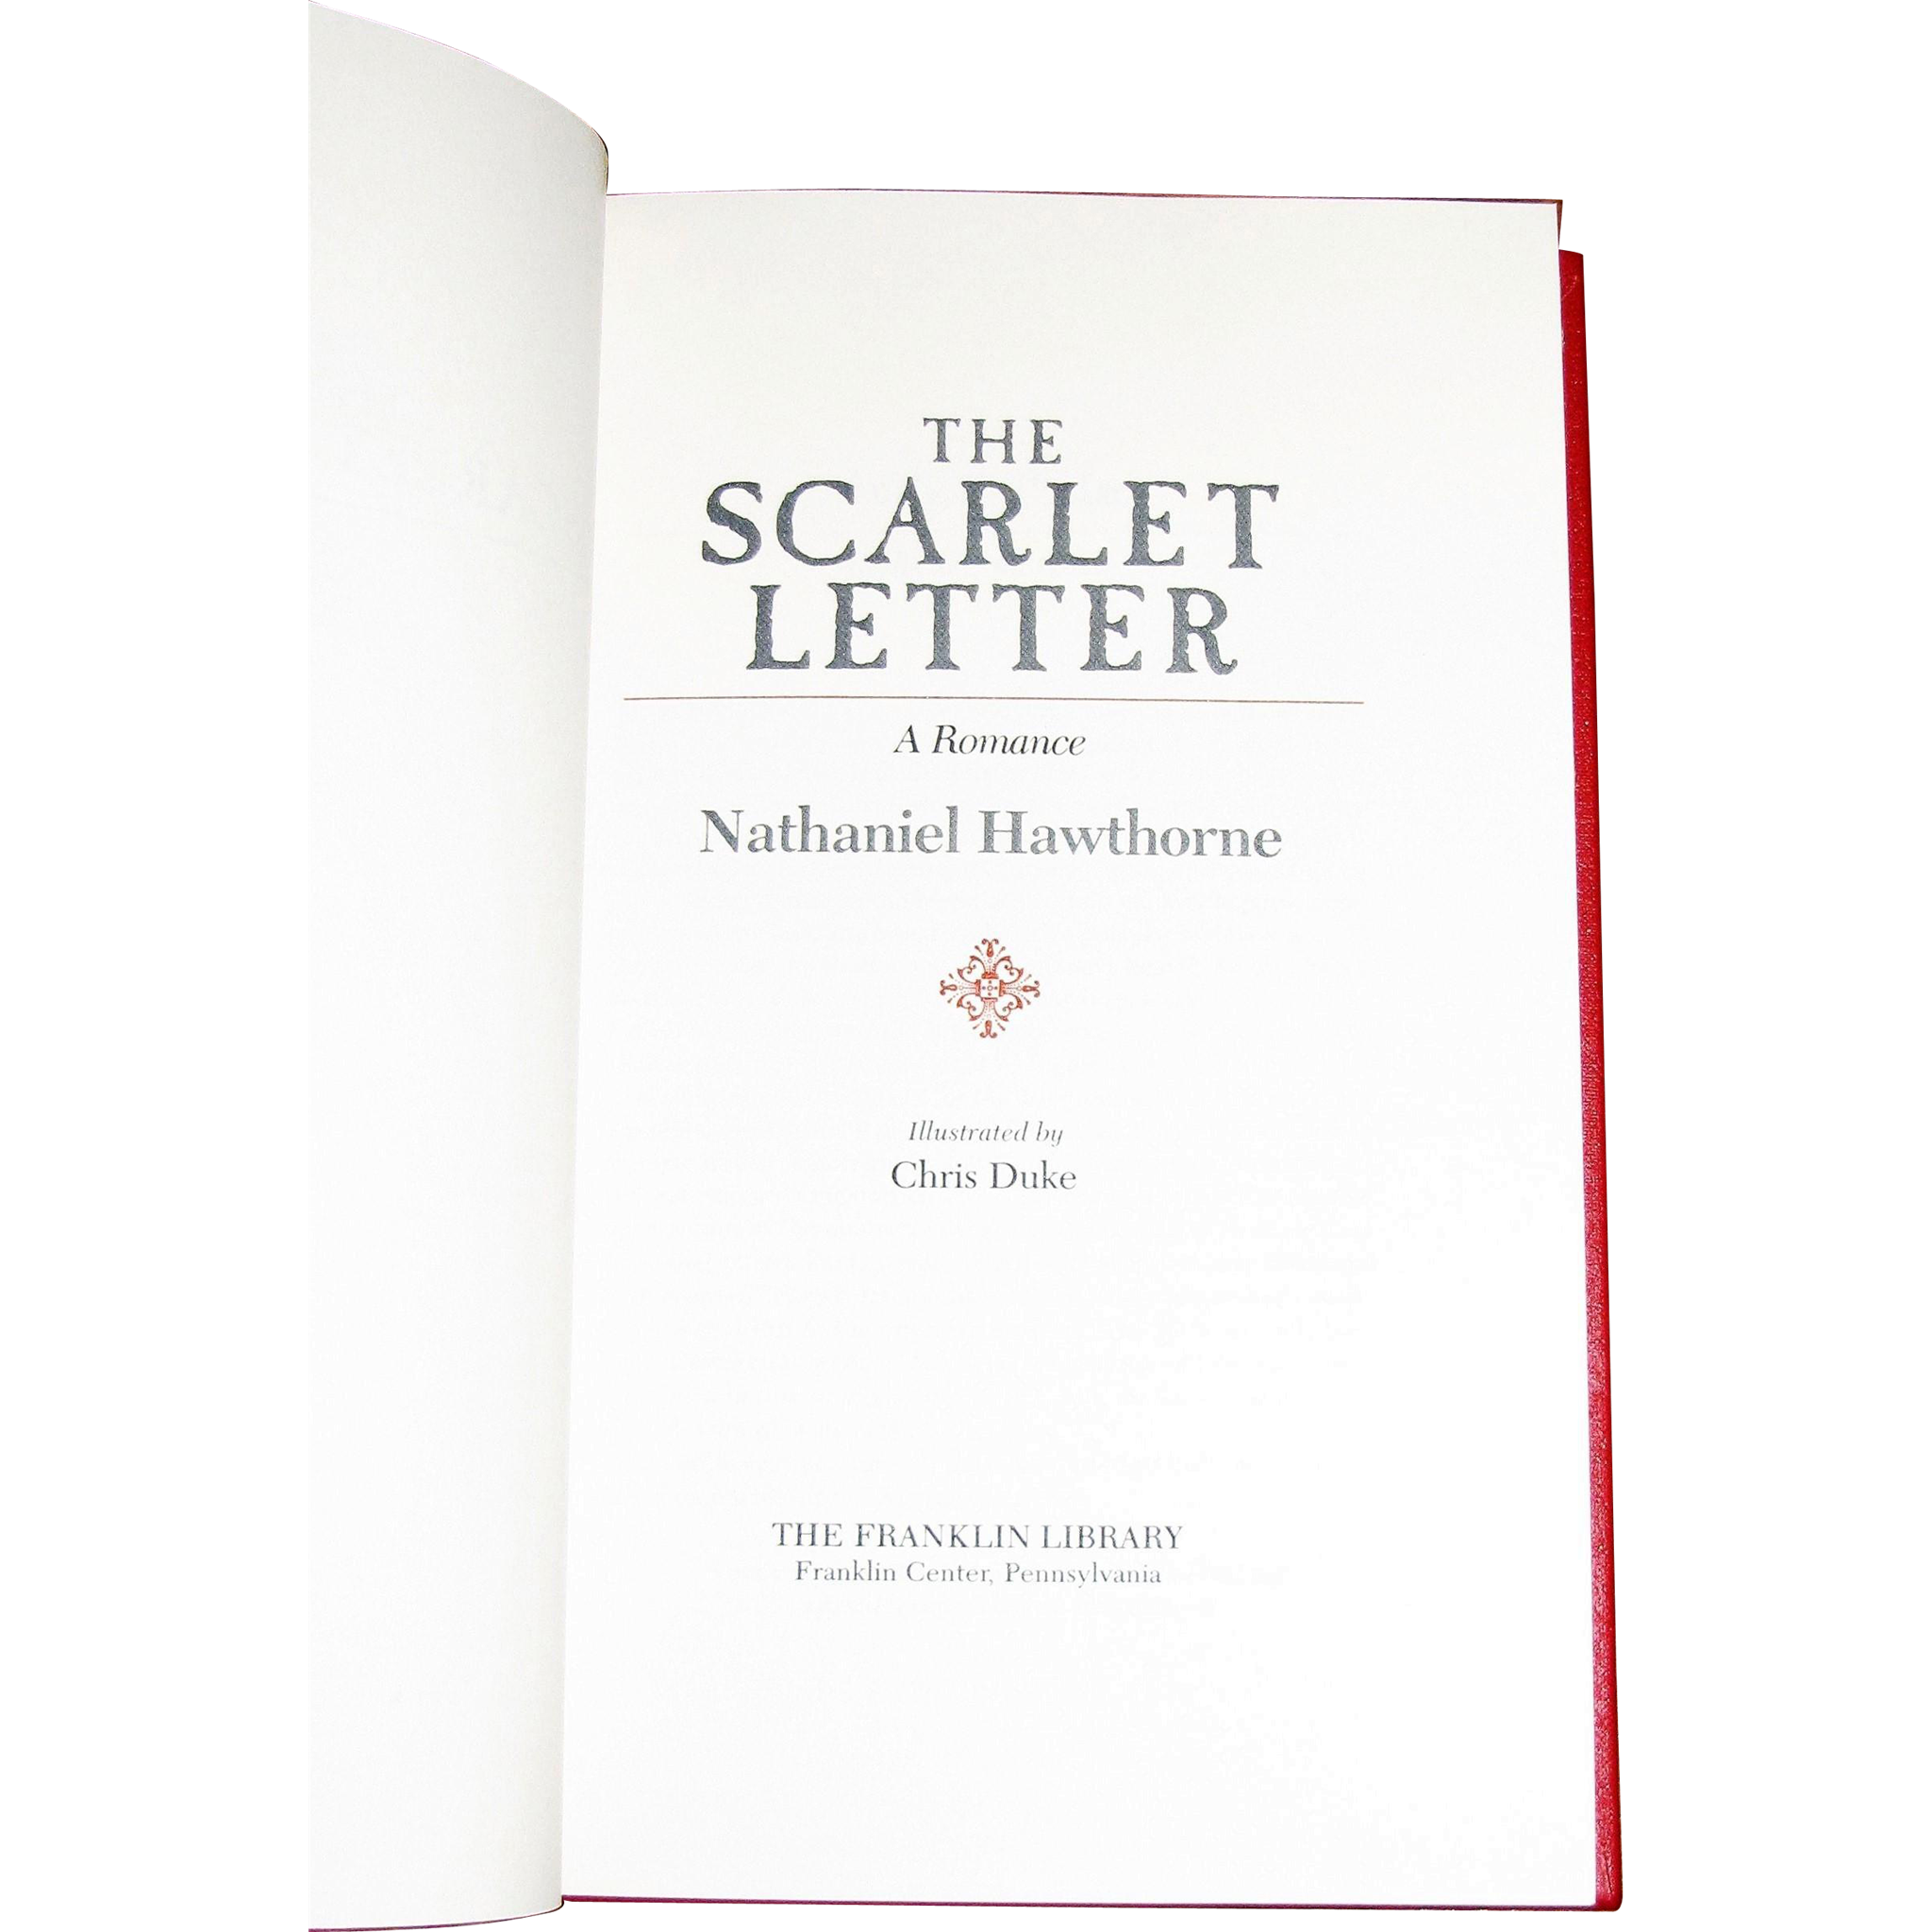 the great sin committed in nathaniel hawthornes novel the scarlet letter The scarlet letter rightly deserves its stature as the first great novel nathaniel hawthorne's the scarlet letter committed an unforgivable sin.